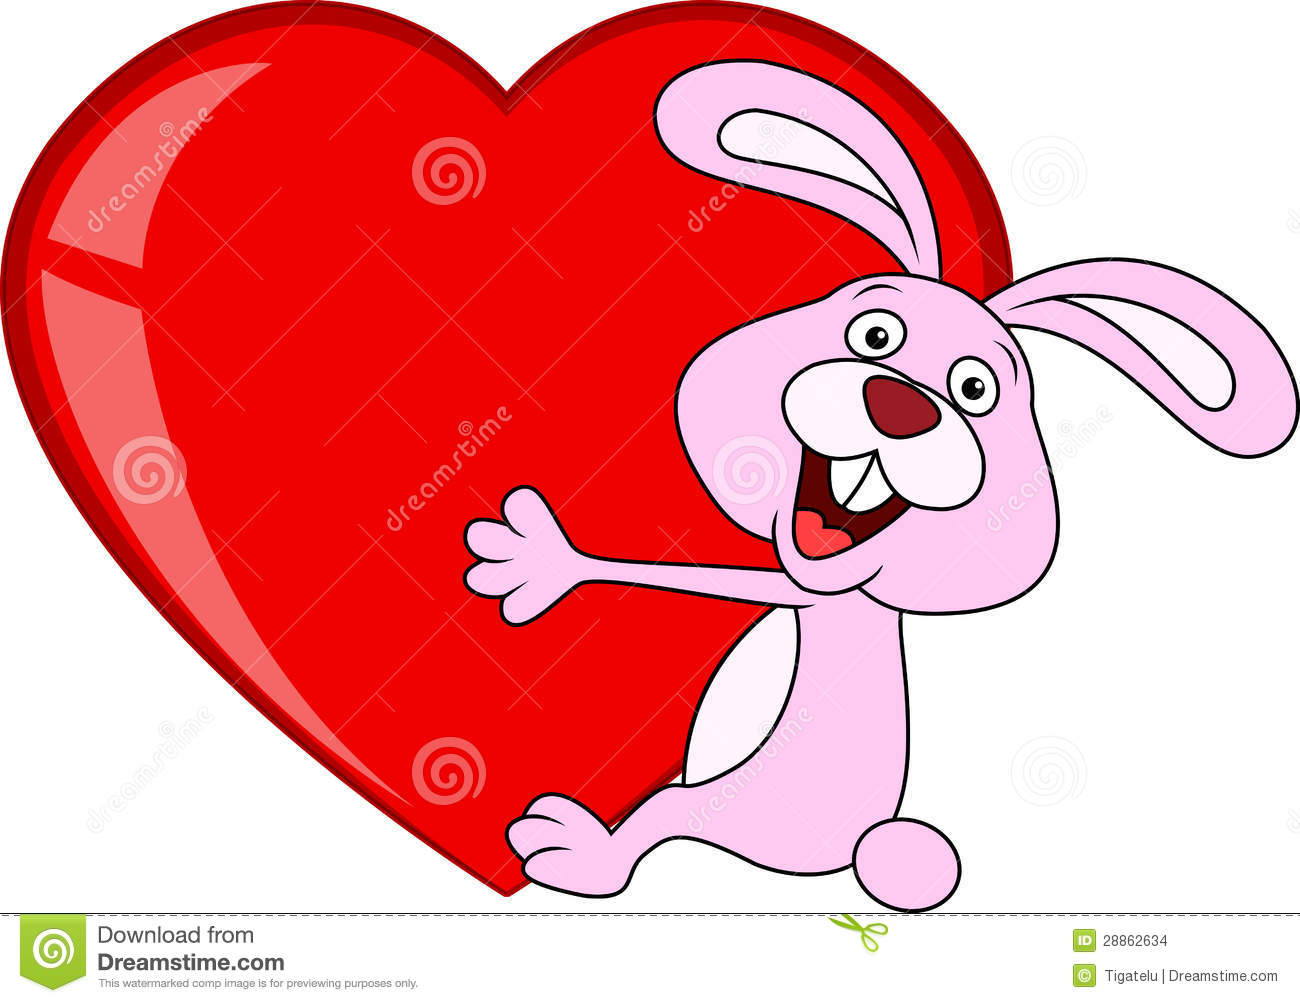 Rabbit Cartoon With Love Heart Stock Vector - Image: 28862634